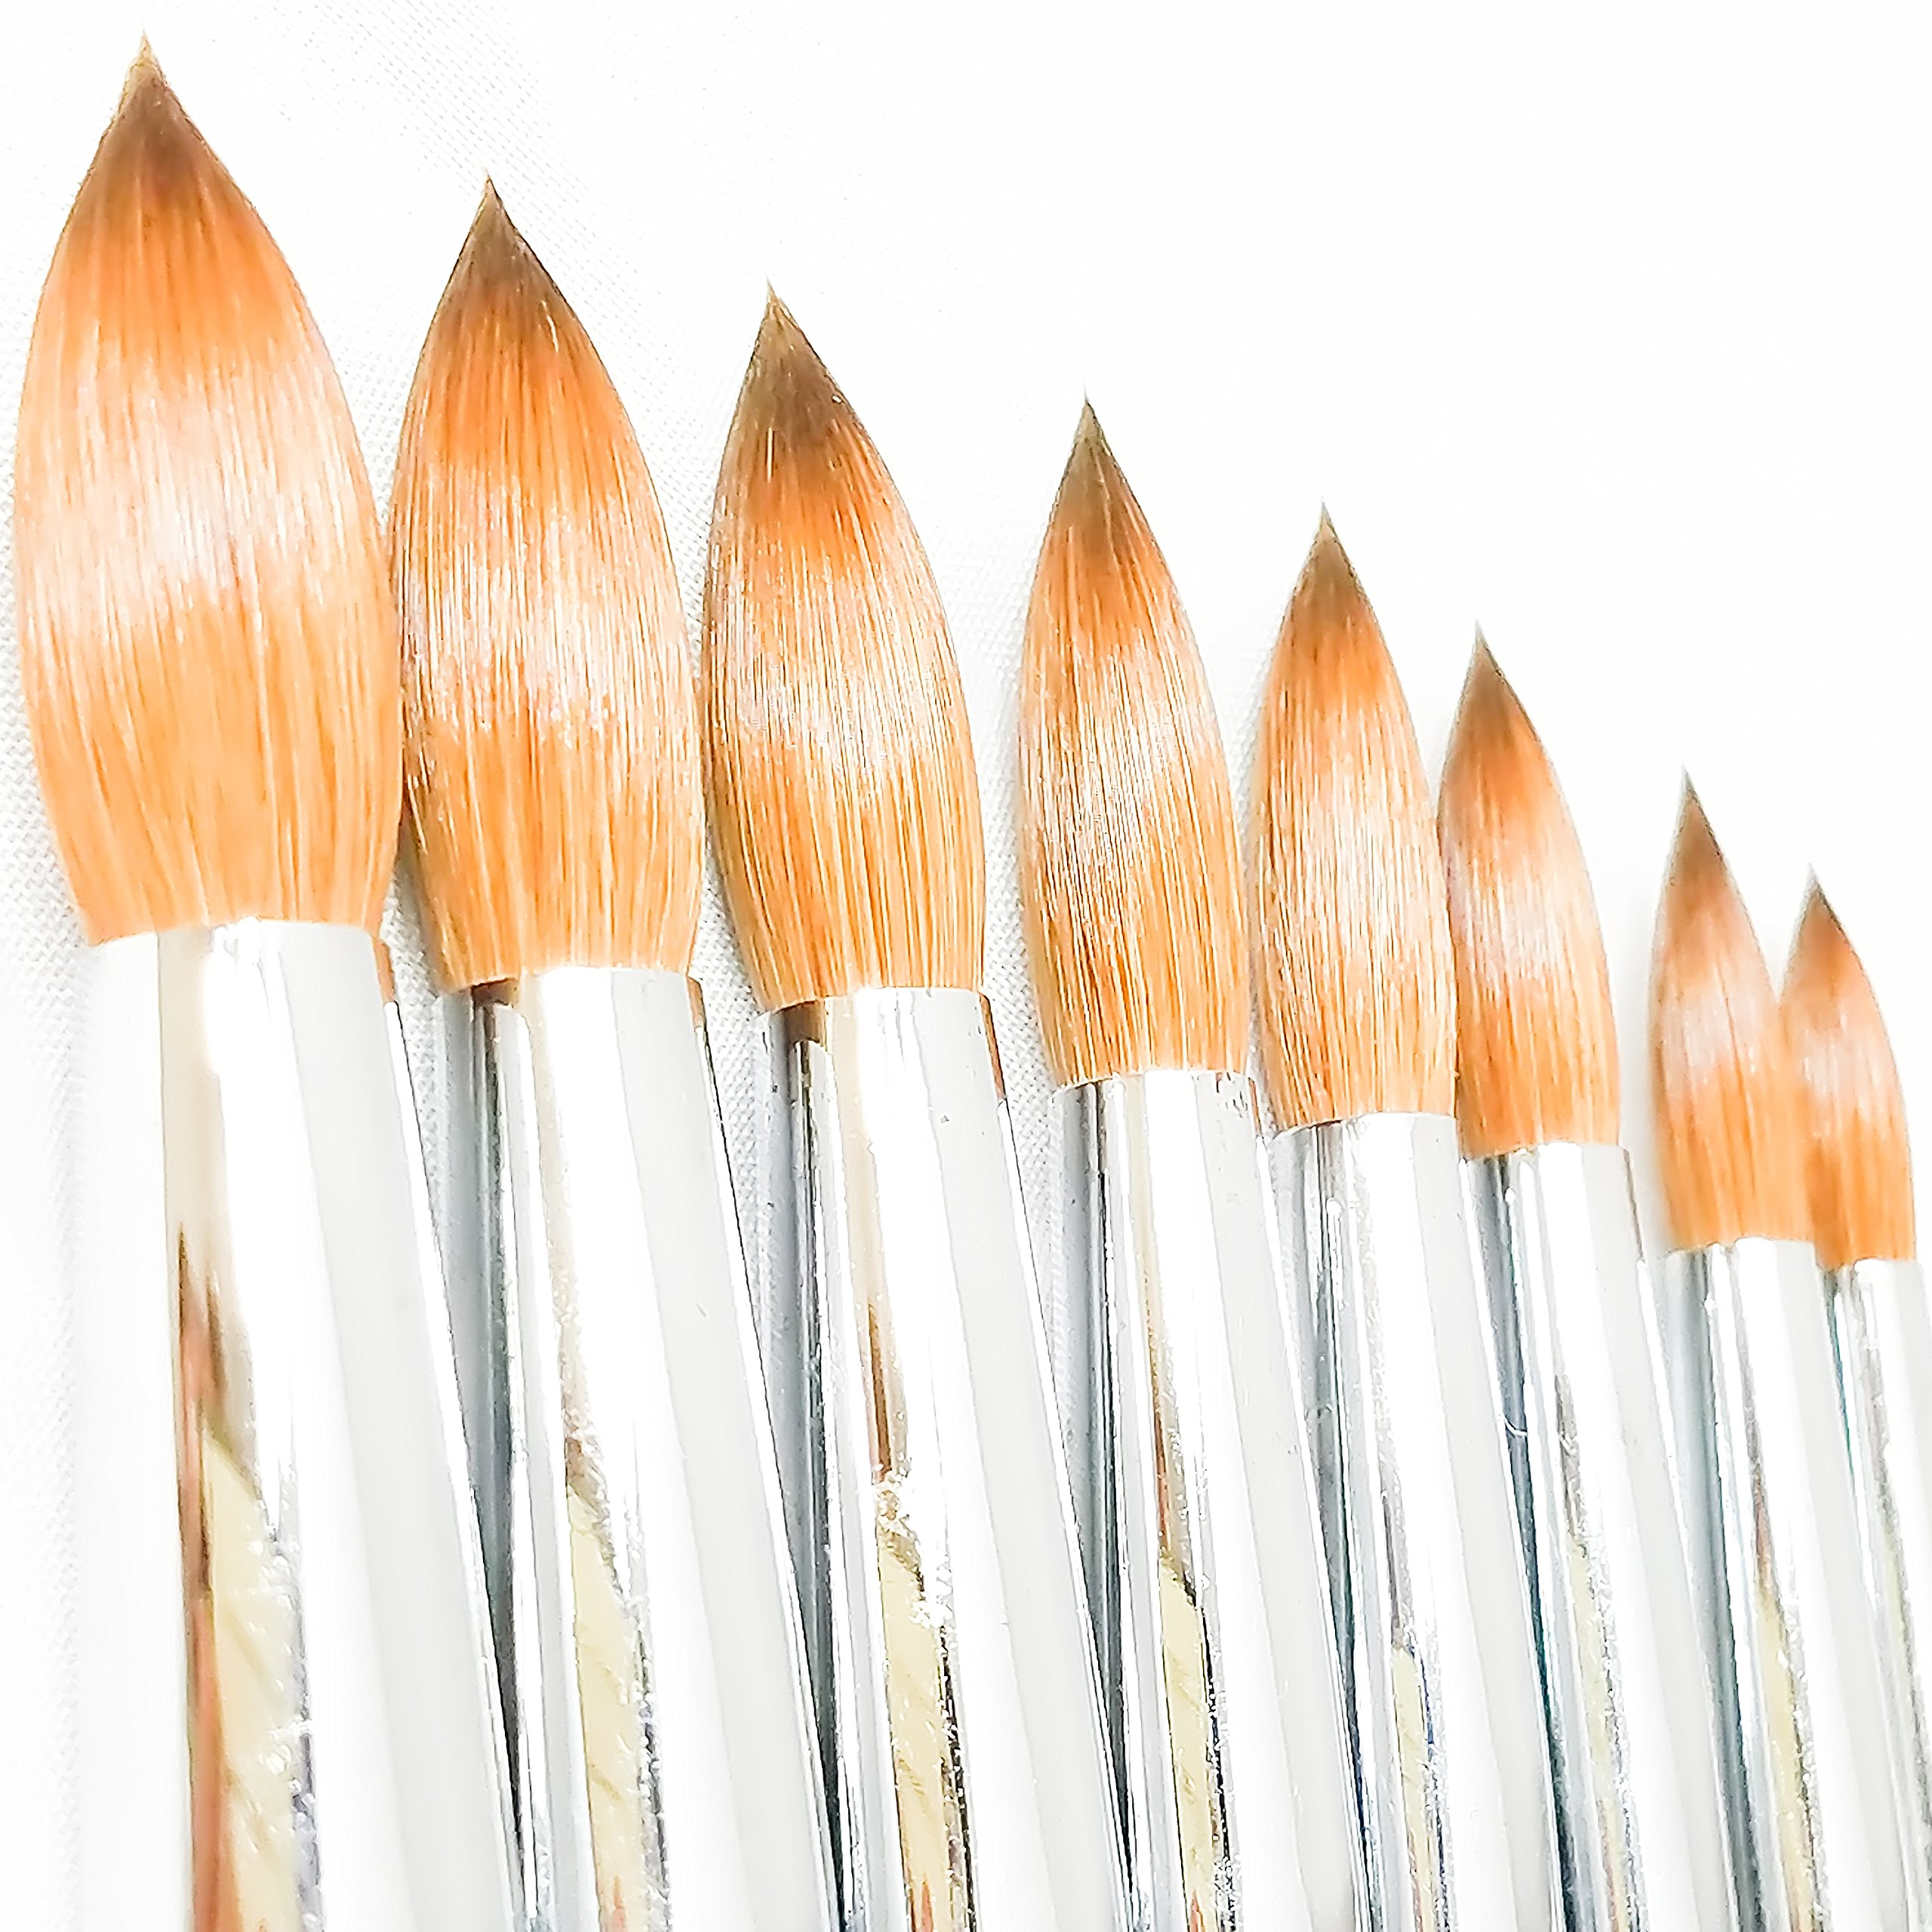 Professional 100% Real Kolinsky Acrylic Nail Brush for Gel 3D Powder Designs Nail Art Manicure Pedicure Wooden Handle High Quality (#8)